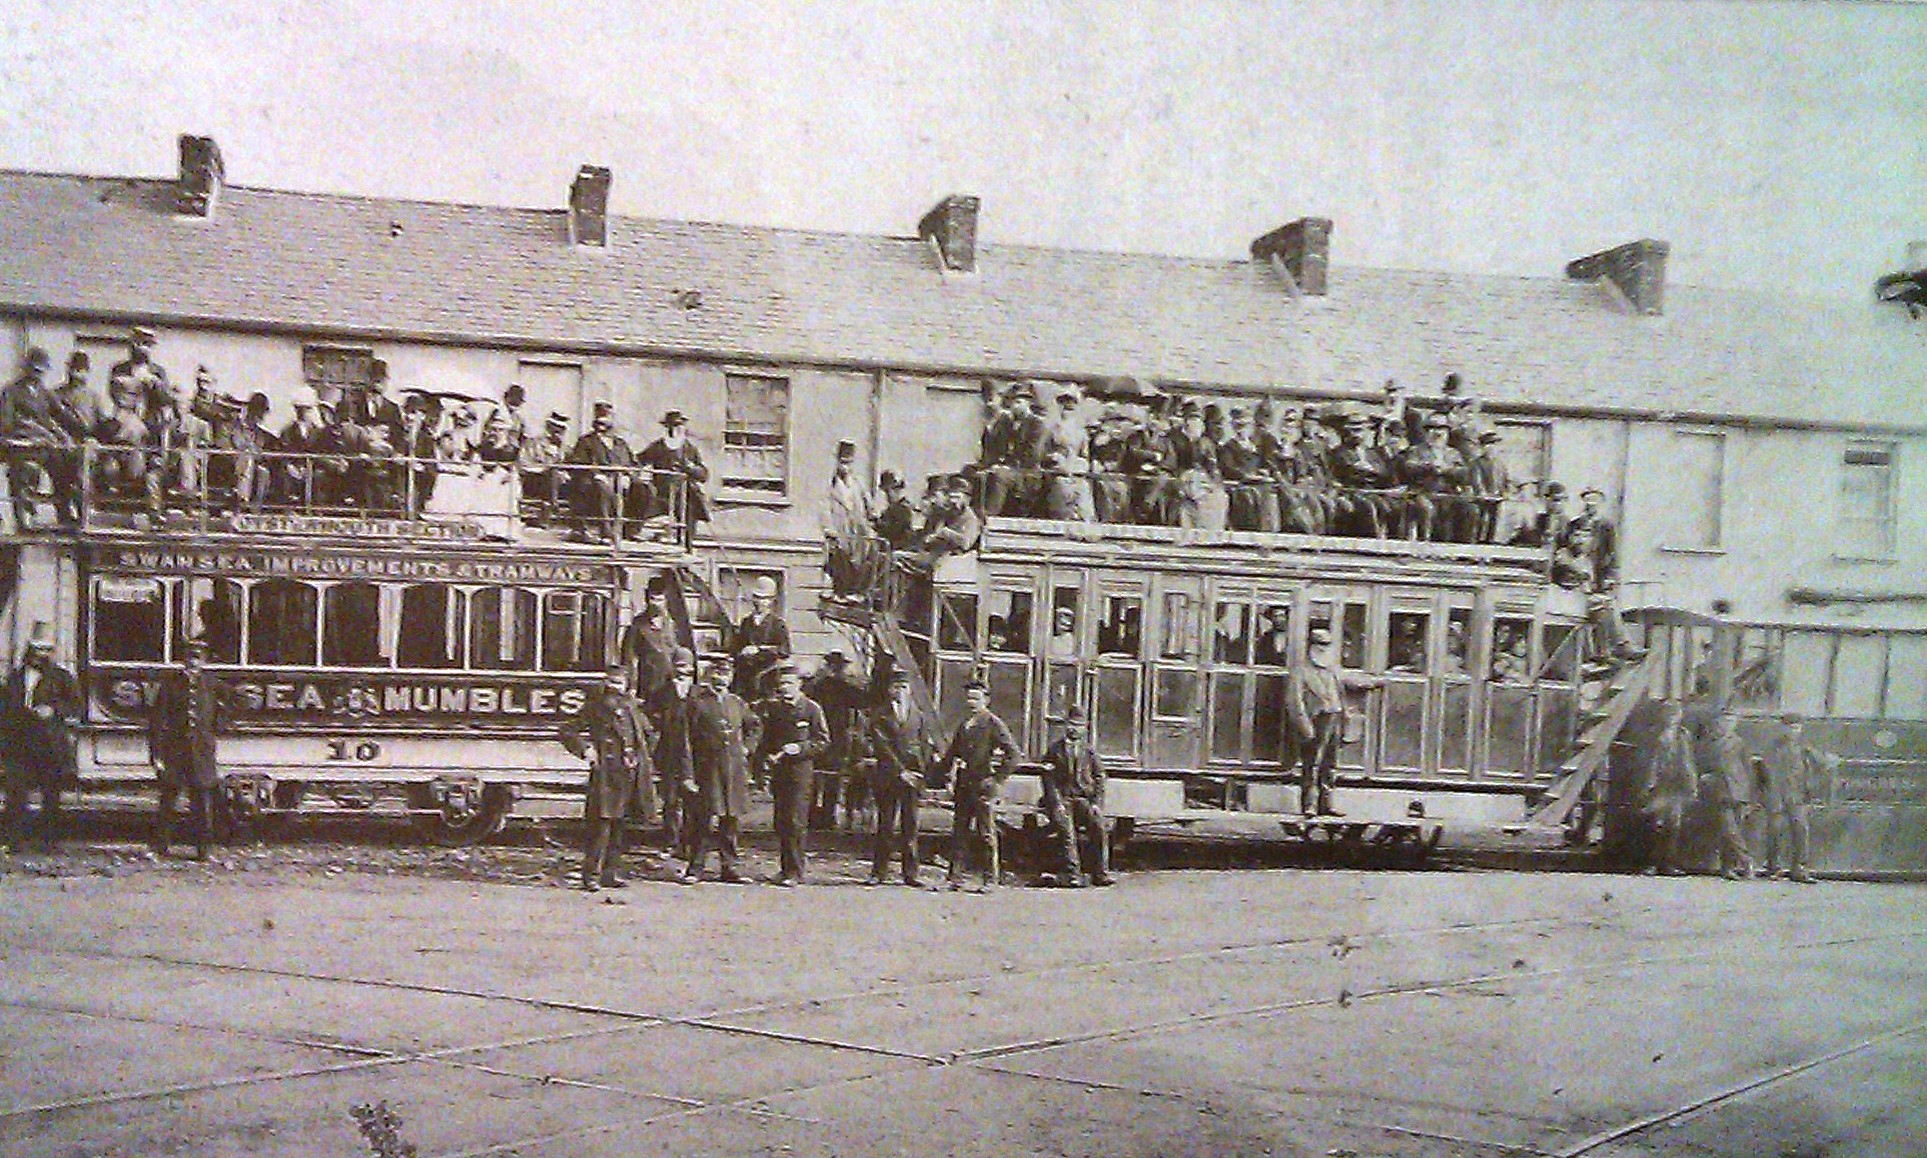 m train rutland street 1878 - The Swansea & Mumbles Railway